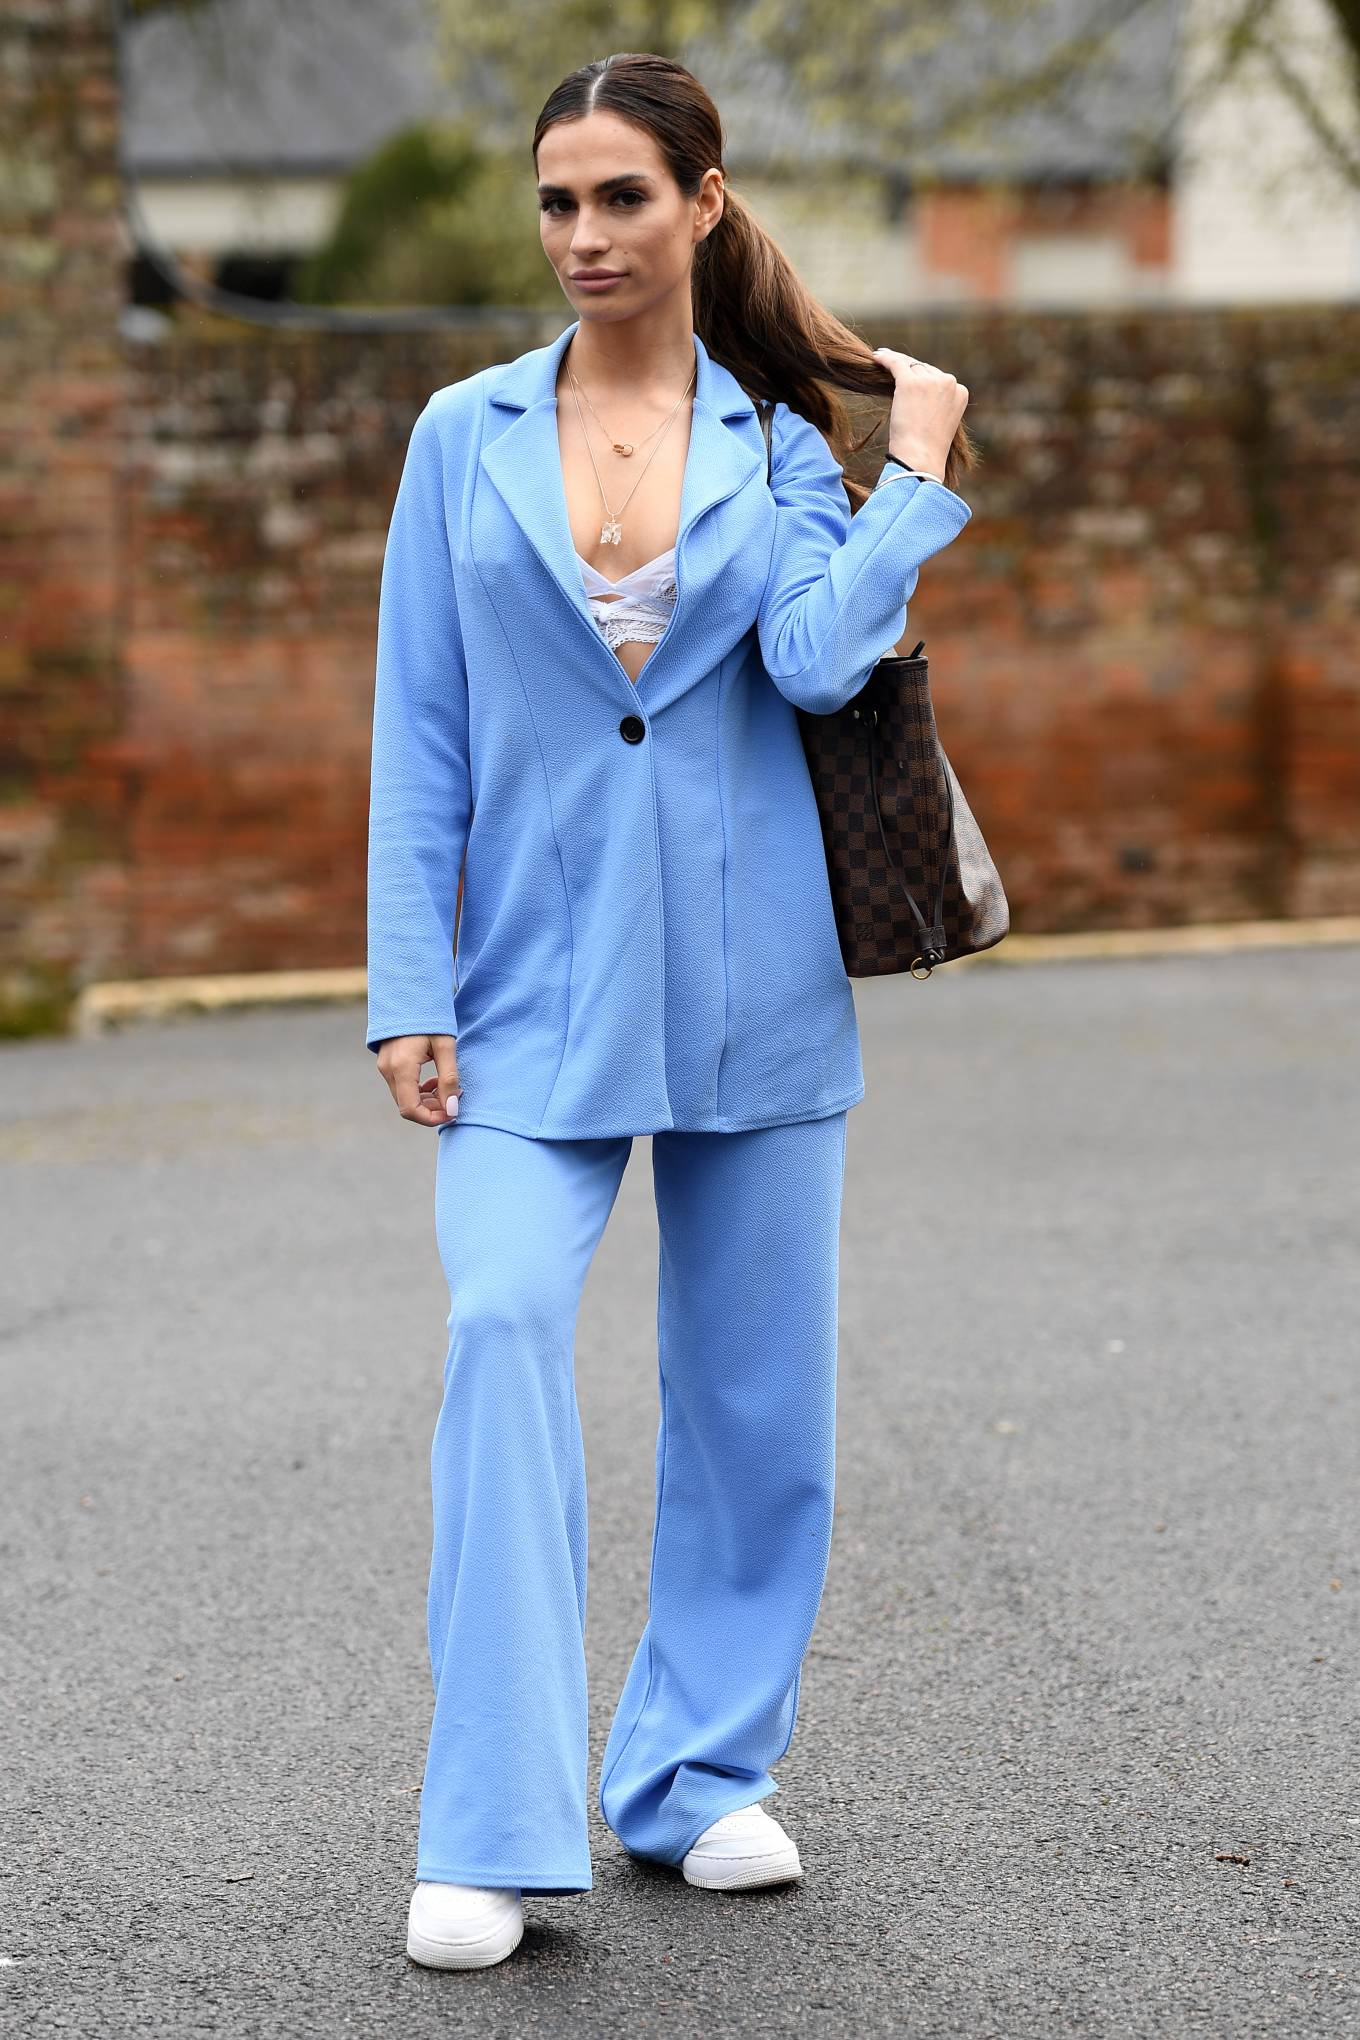 Nicole Bass  - Pictured at The Only Way is Essex TV Show set in Essex